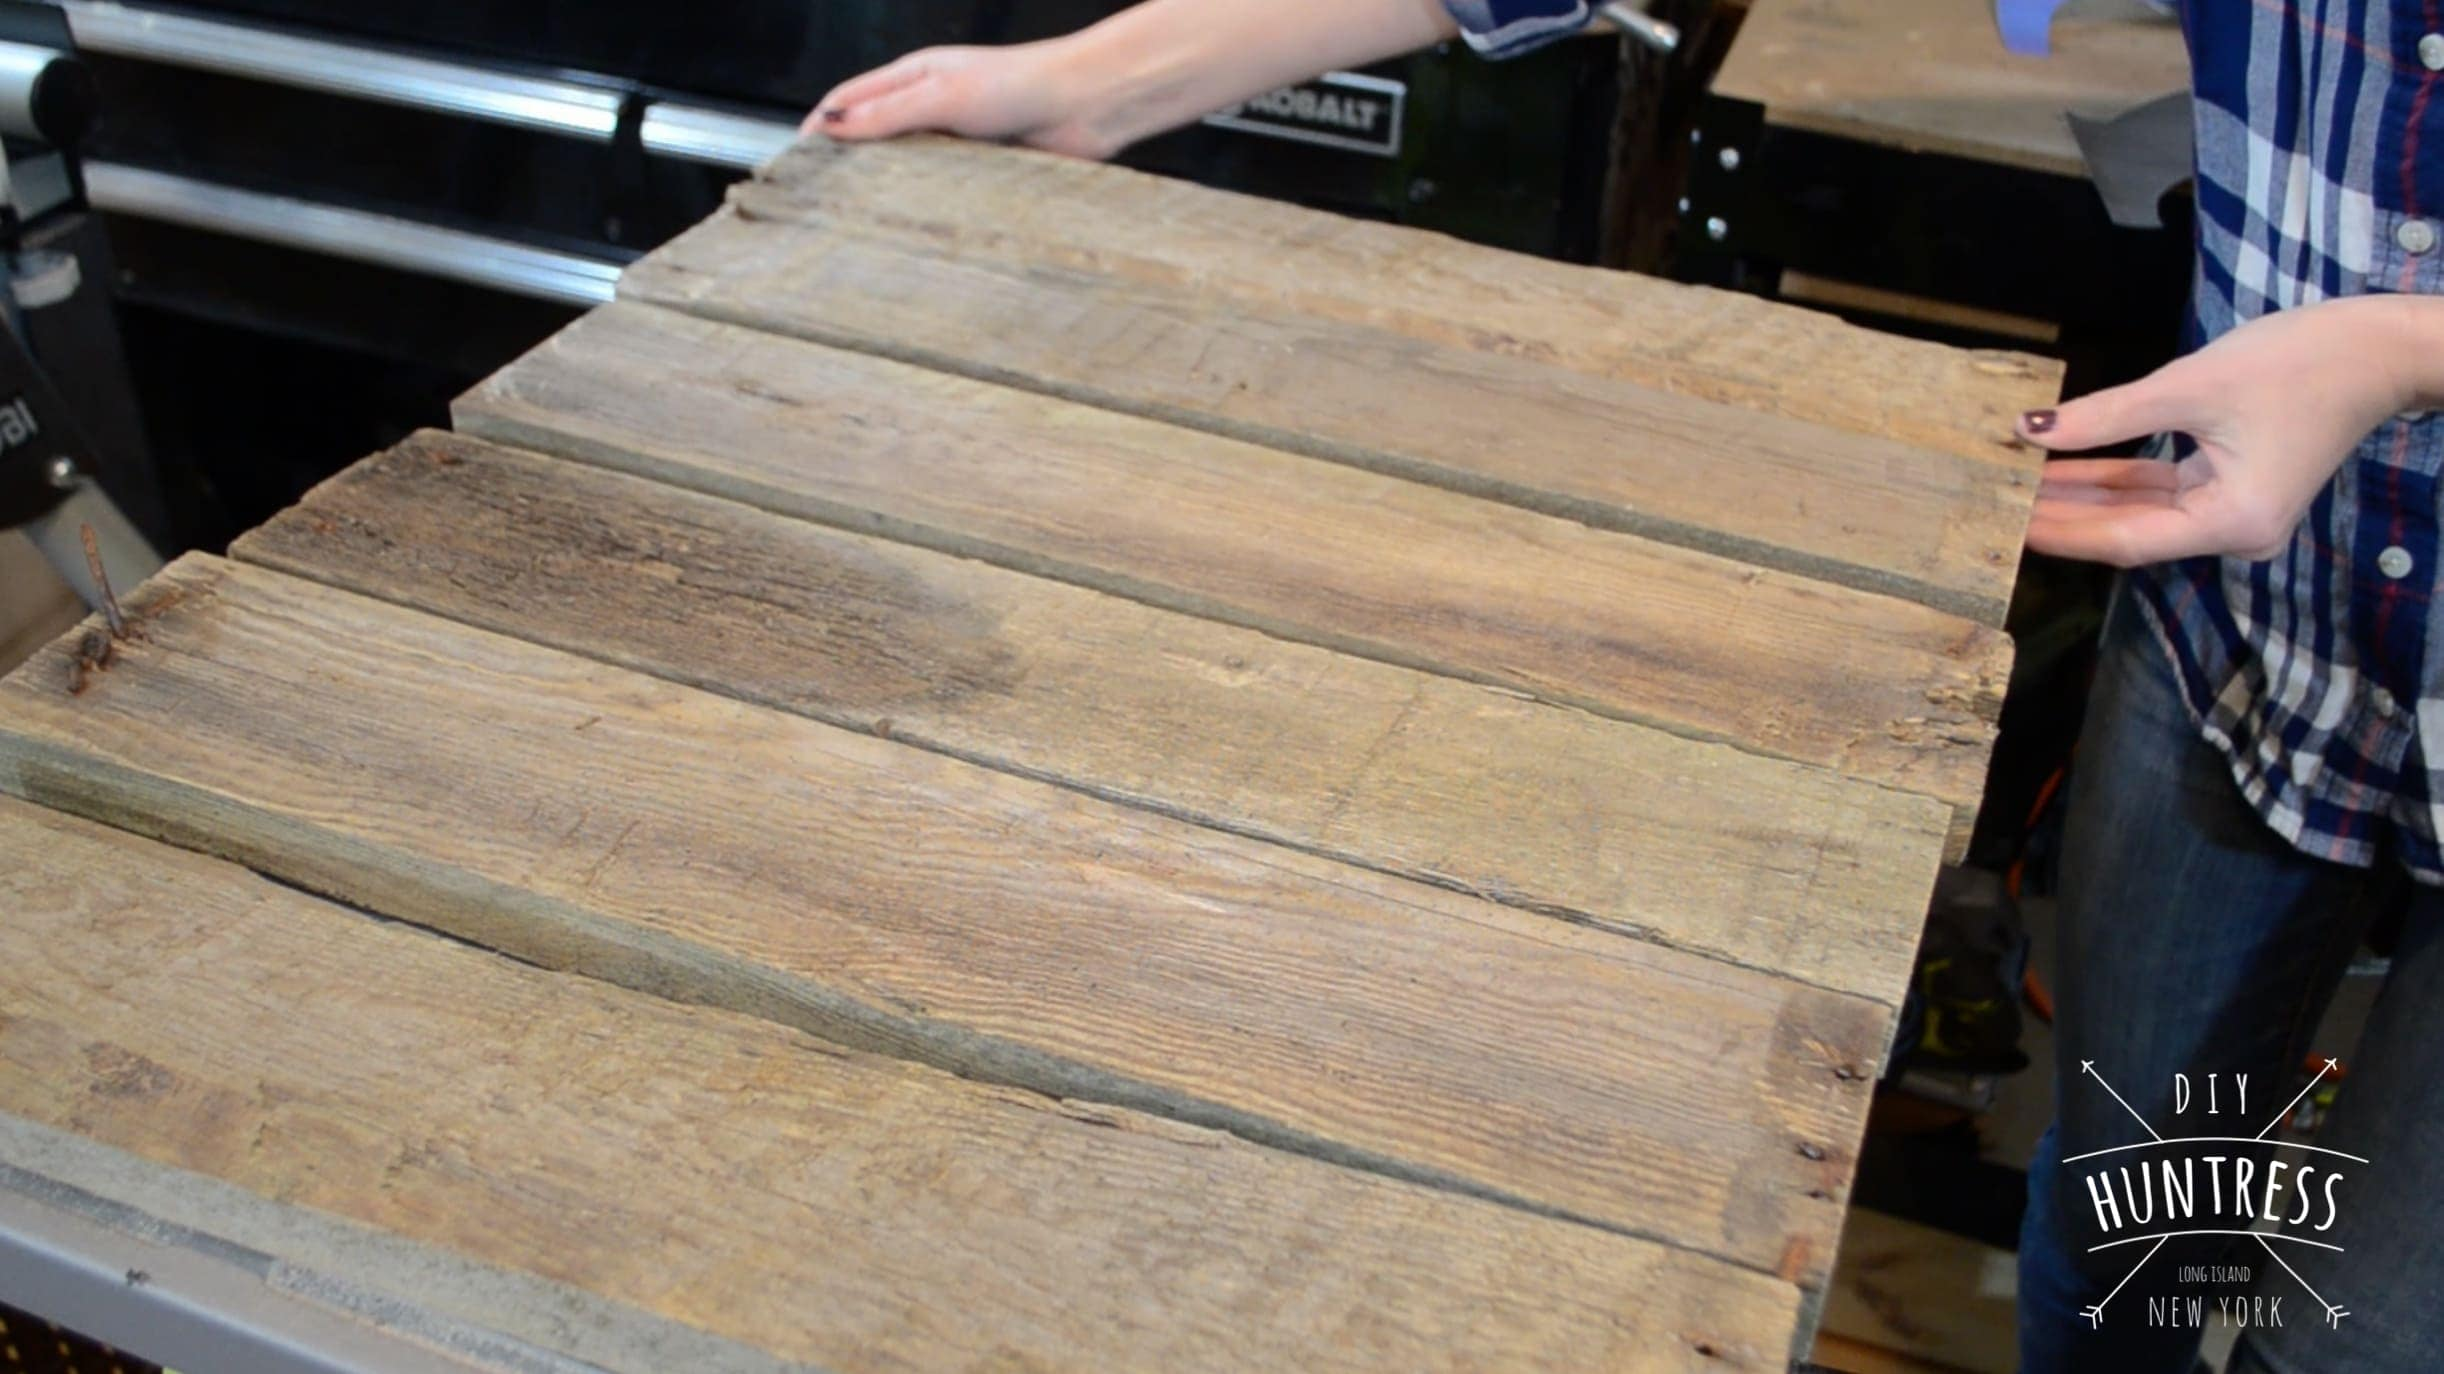 DIY_Huntress-Pallet_Letter-5